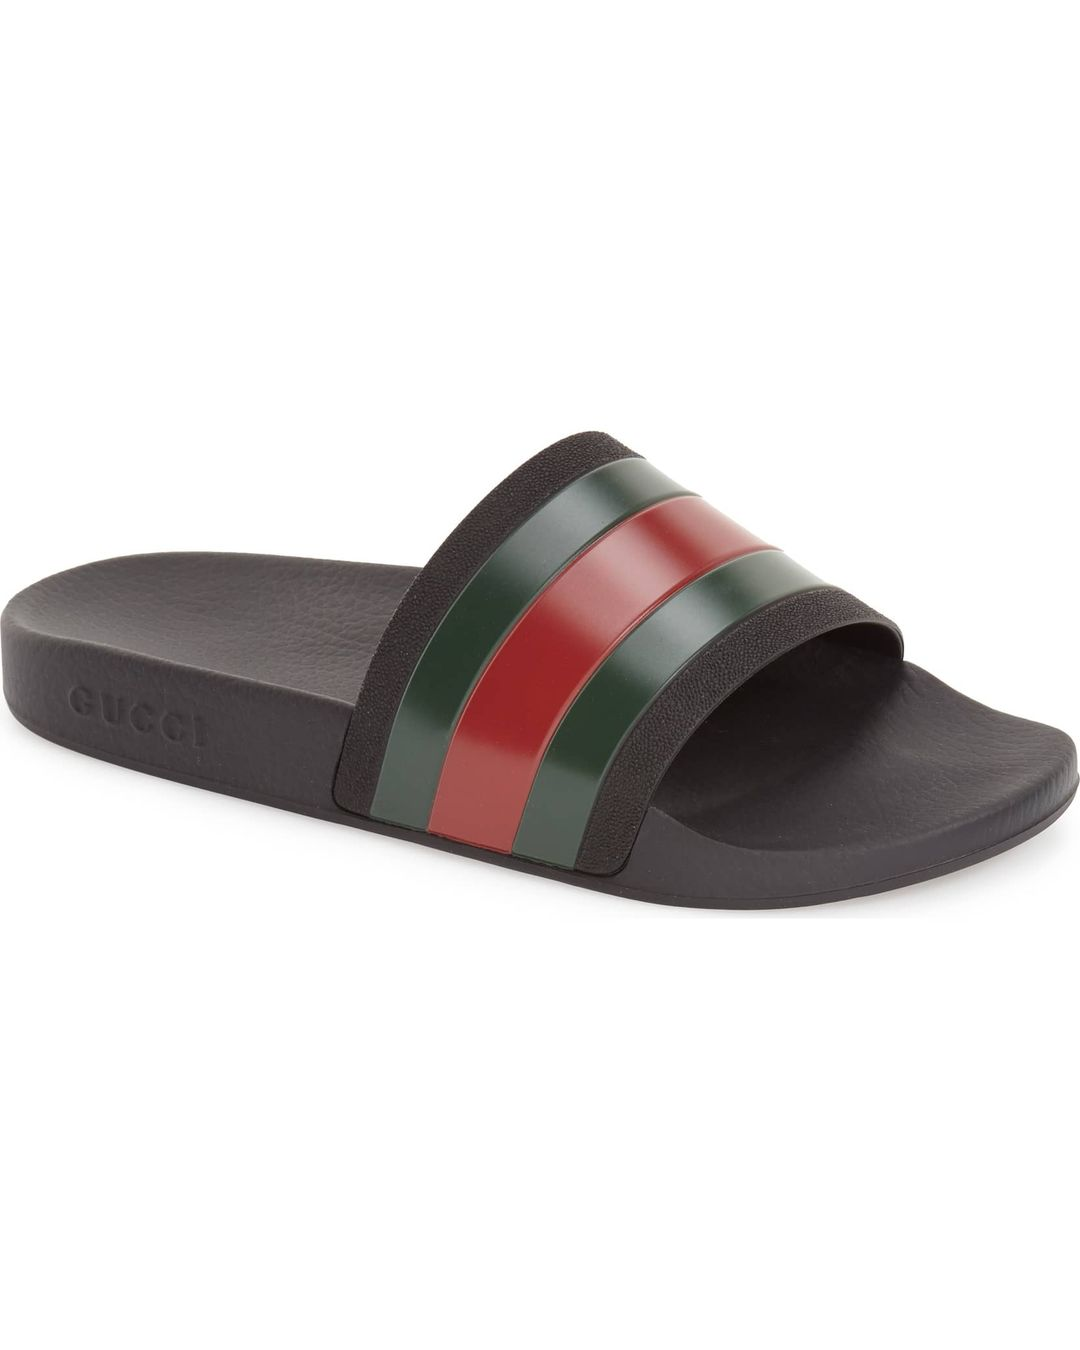 Gucci Pursuit Slide Sandal Reviews and Sizing